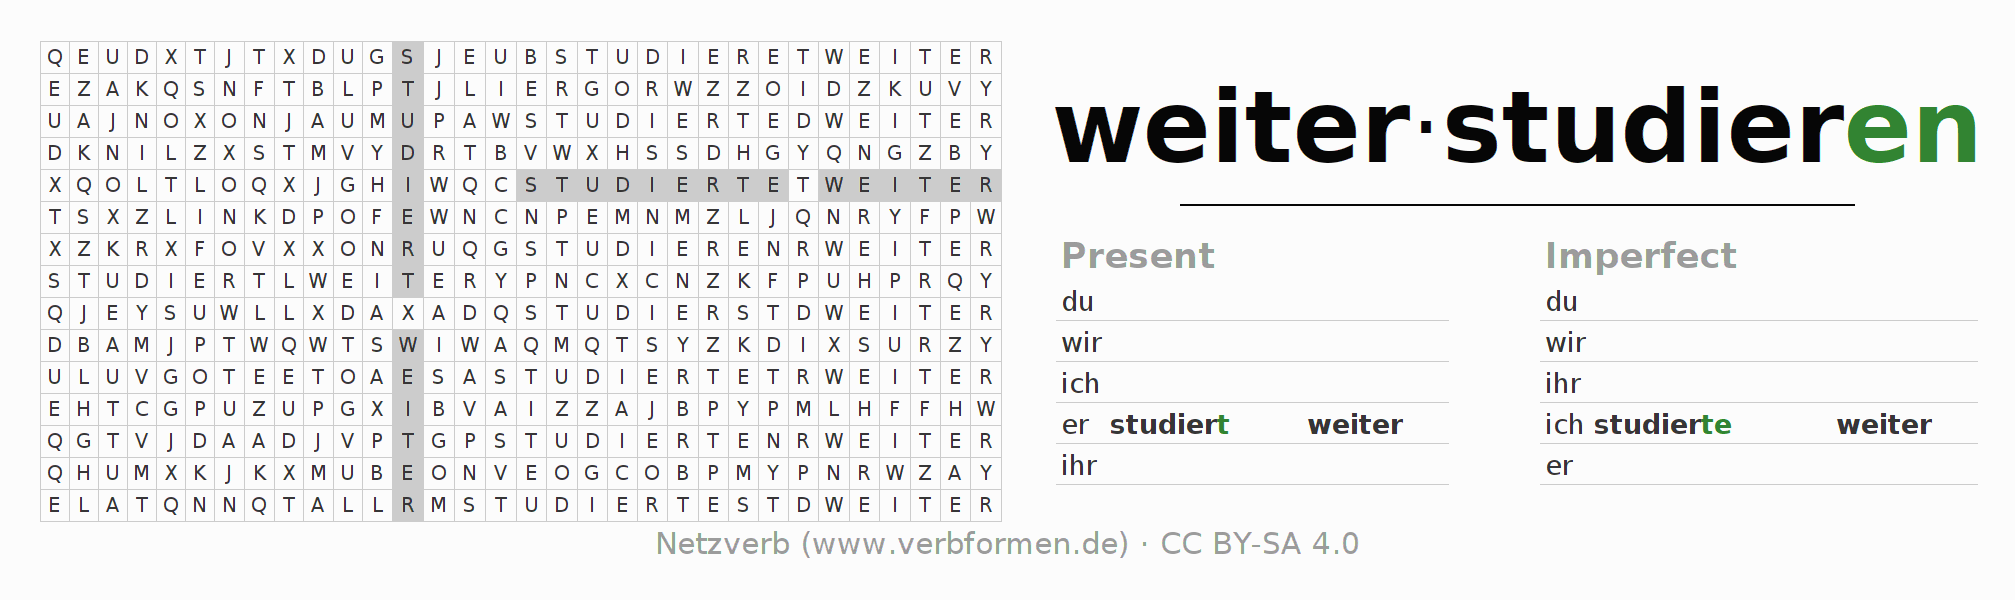 Word search puzzle for the conjugation of the verb weiterstudieren